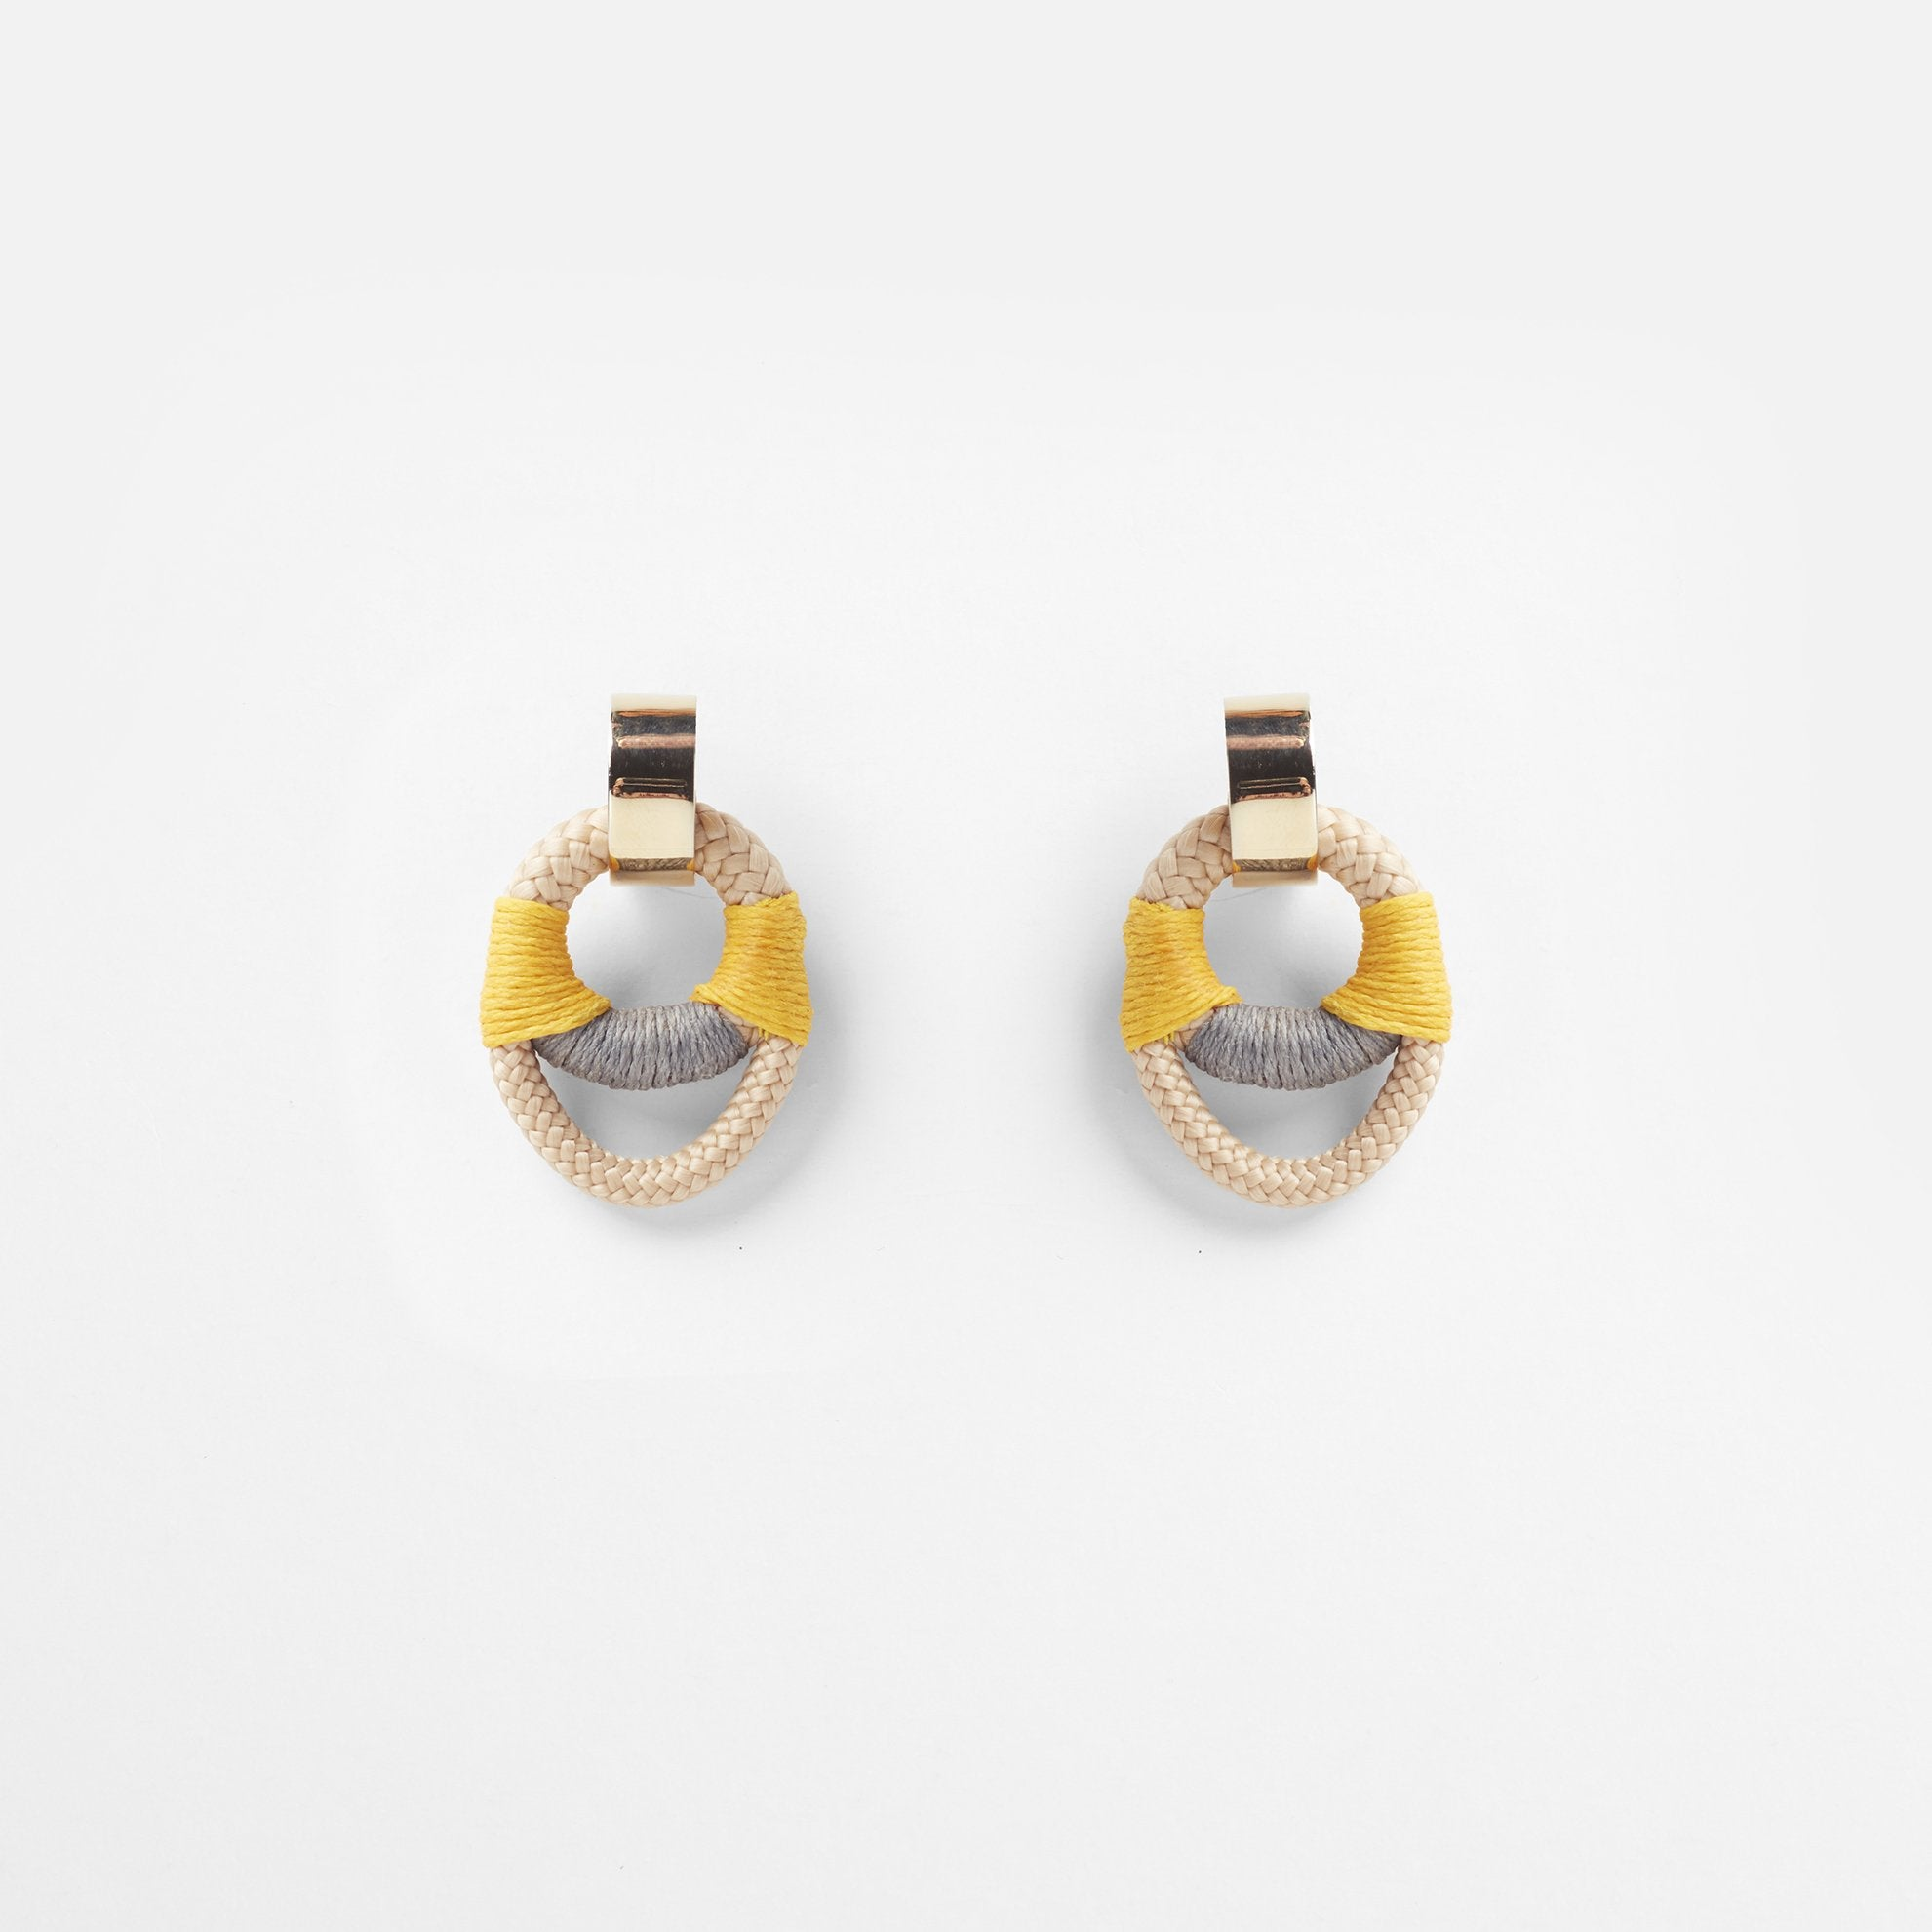 VESSEL EARRINGS by Pichulik at SARZA. earrings, jewellery, jewelry, pichulik, Vessel